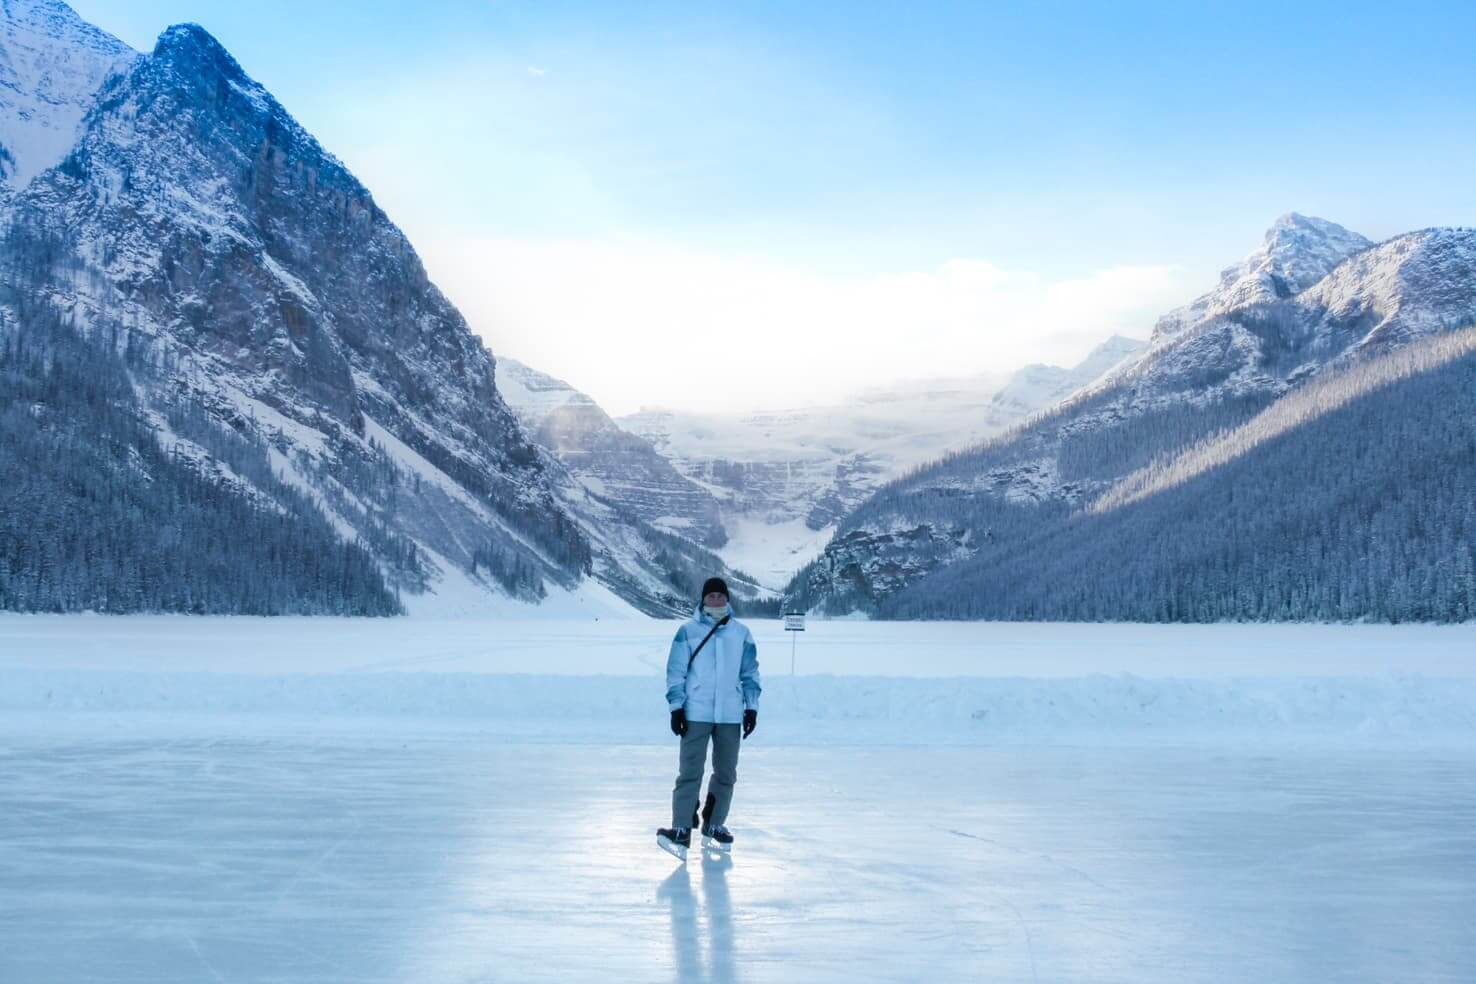 100 best things to do in Banff National Park, Canada - Play ice hockey on the frozen lake